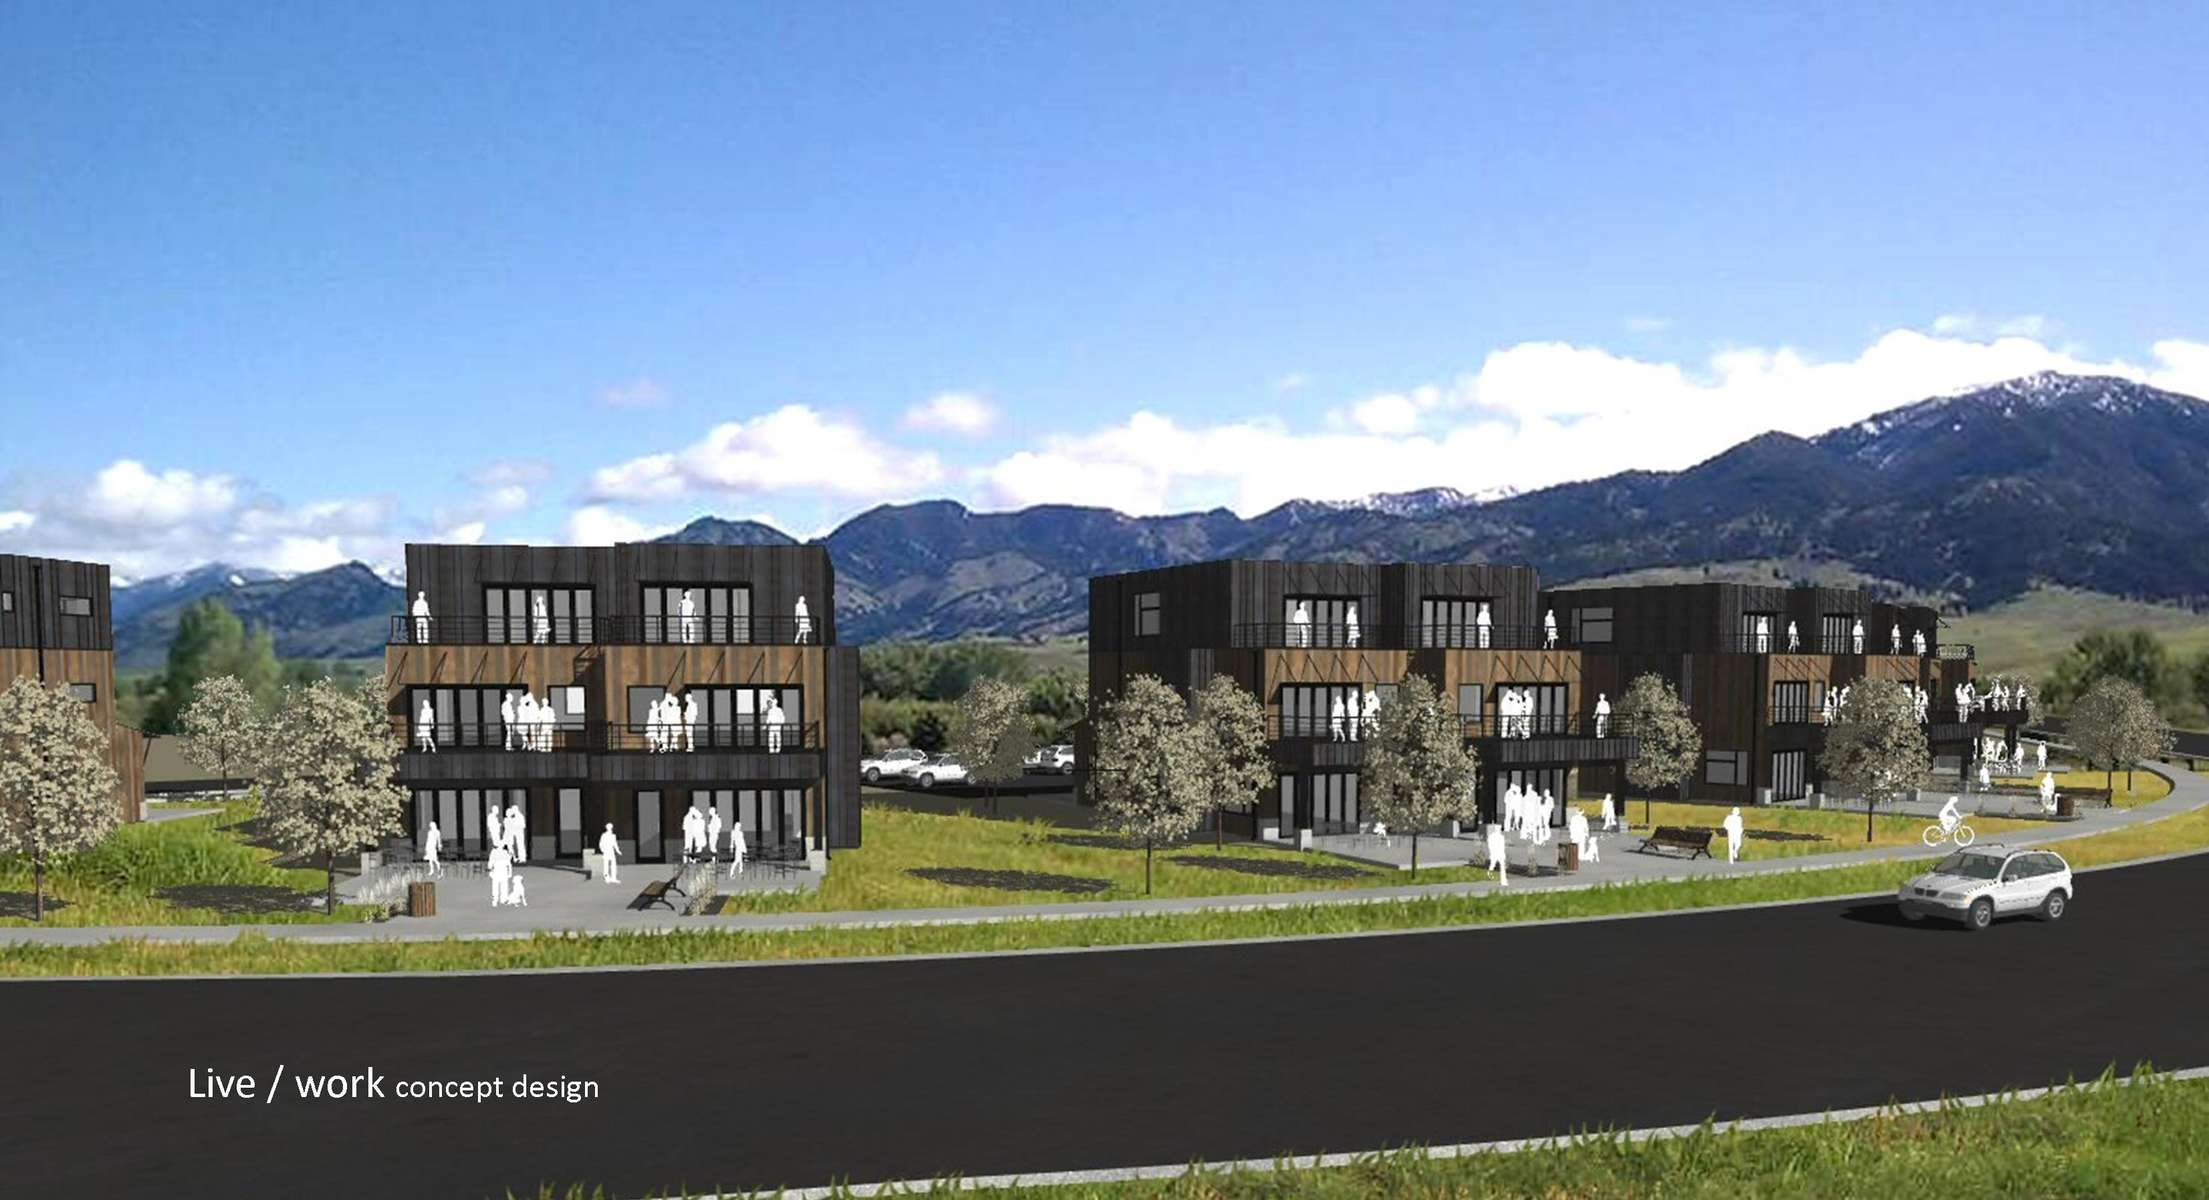 plan-west-design-firm-_-projects-in-process-713